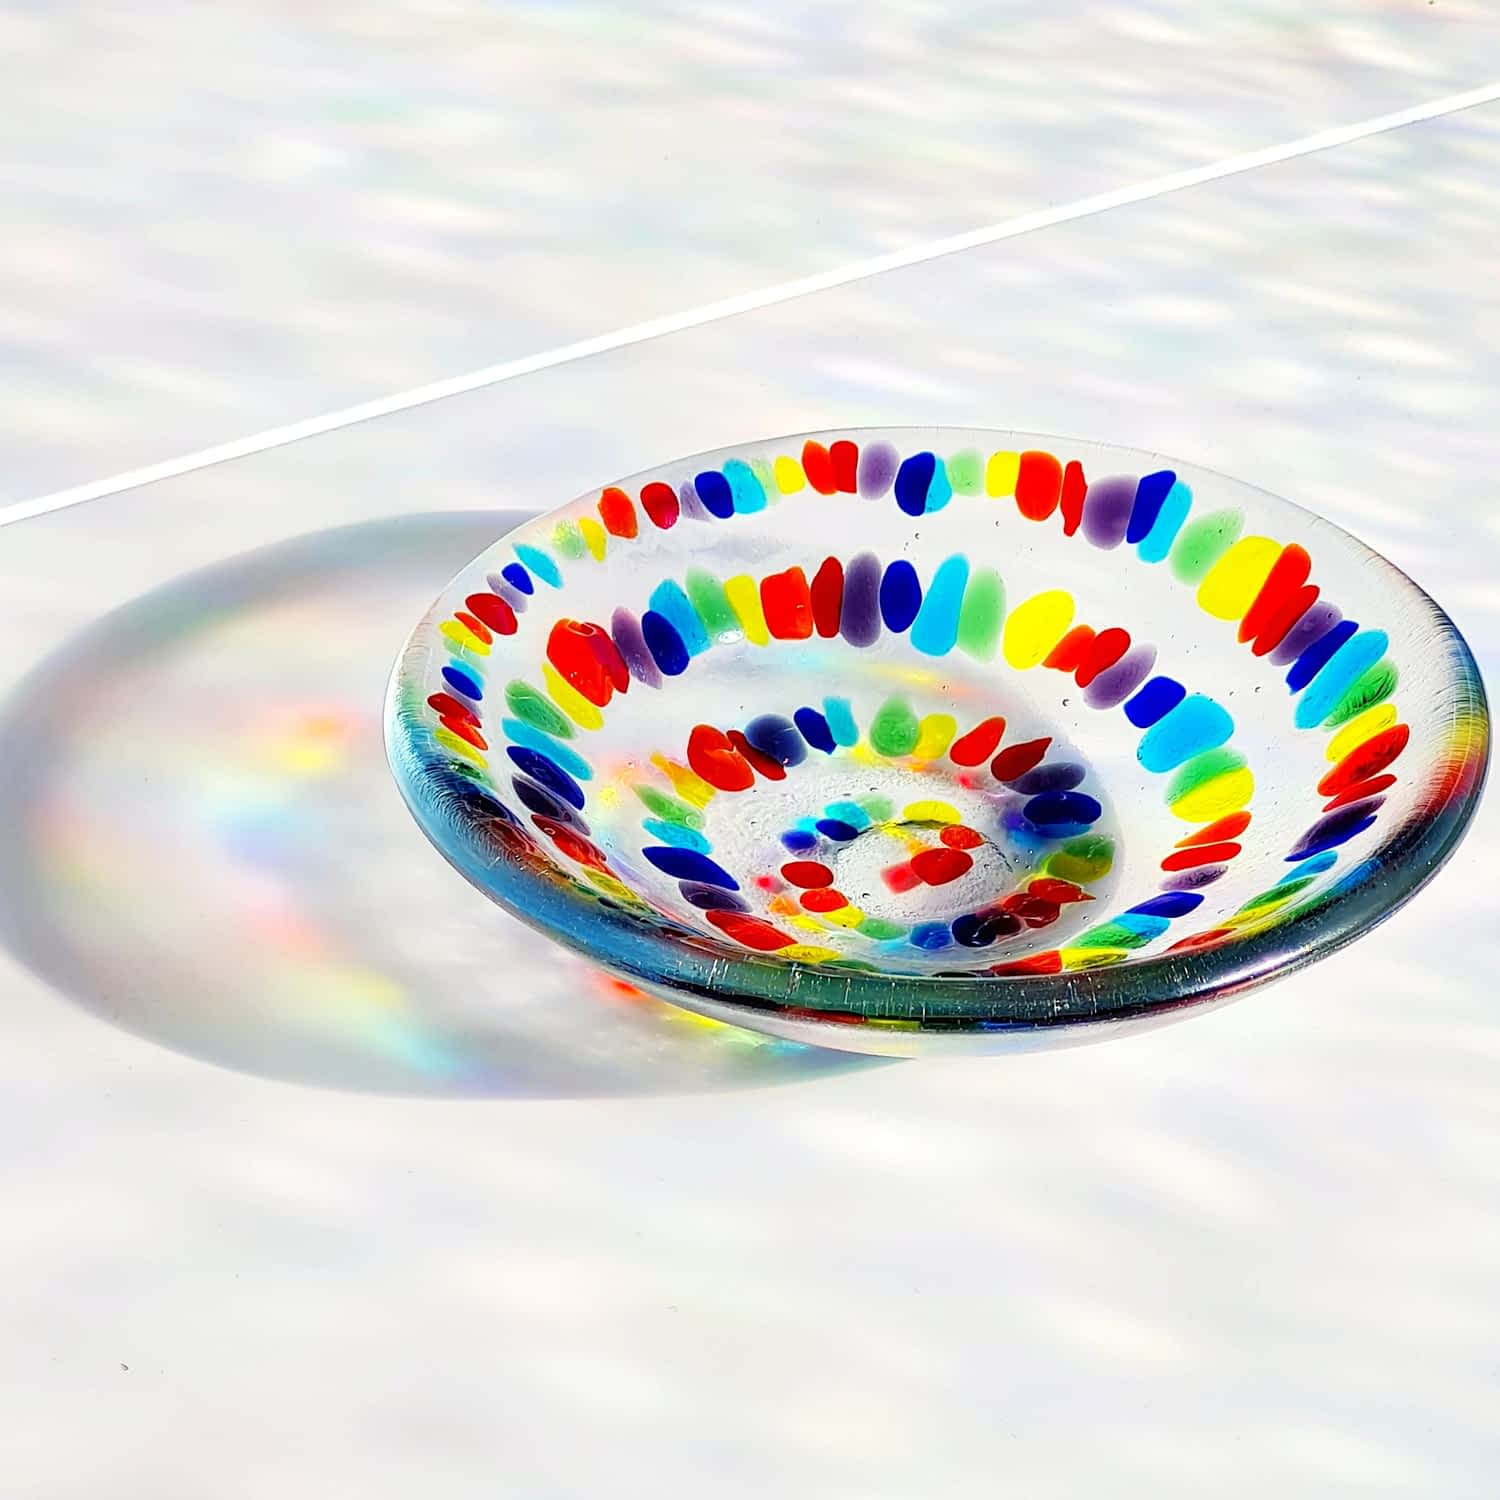 A Spiral Rainbow Bowl showing Rainbow coloured shadows on a white background